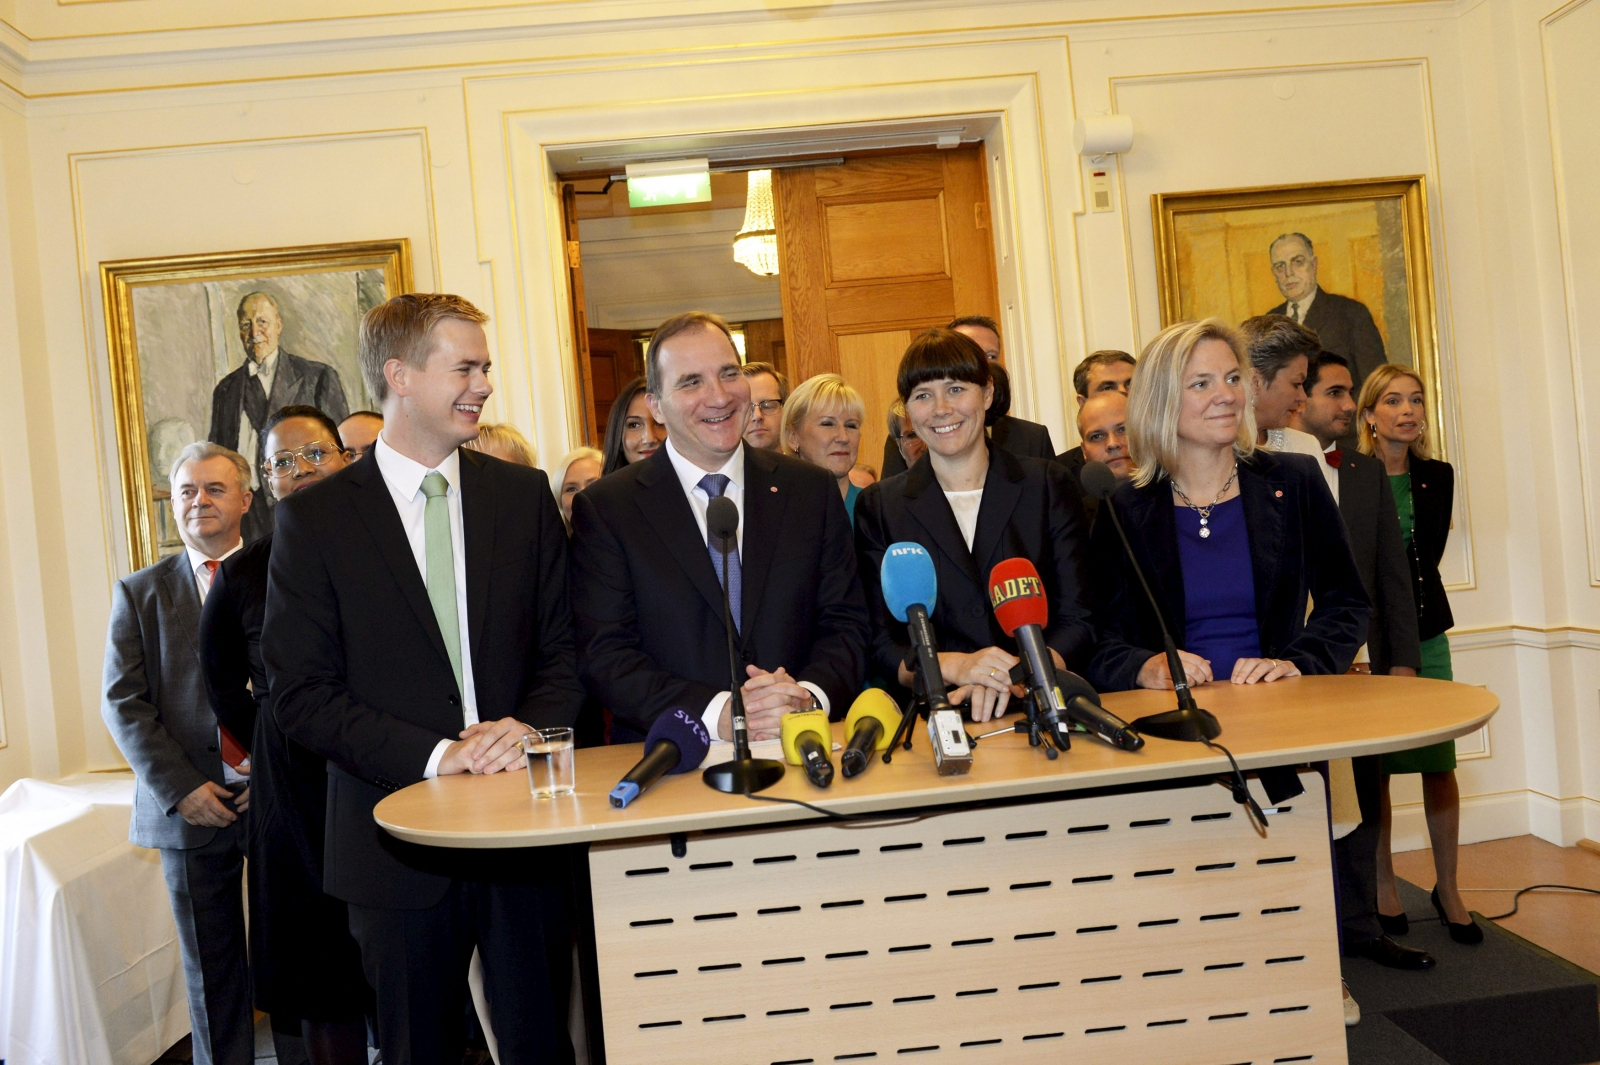 Swedish Prime Minister Stefan Lofven (front 2nd L) smiles as he stands with his new government during a news conference in Stockholm